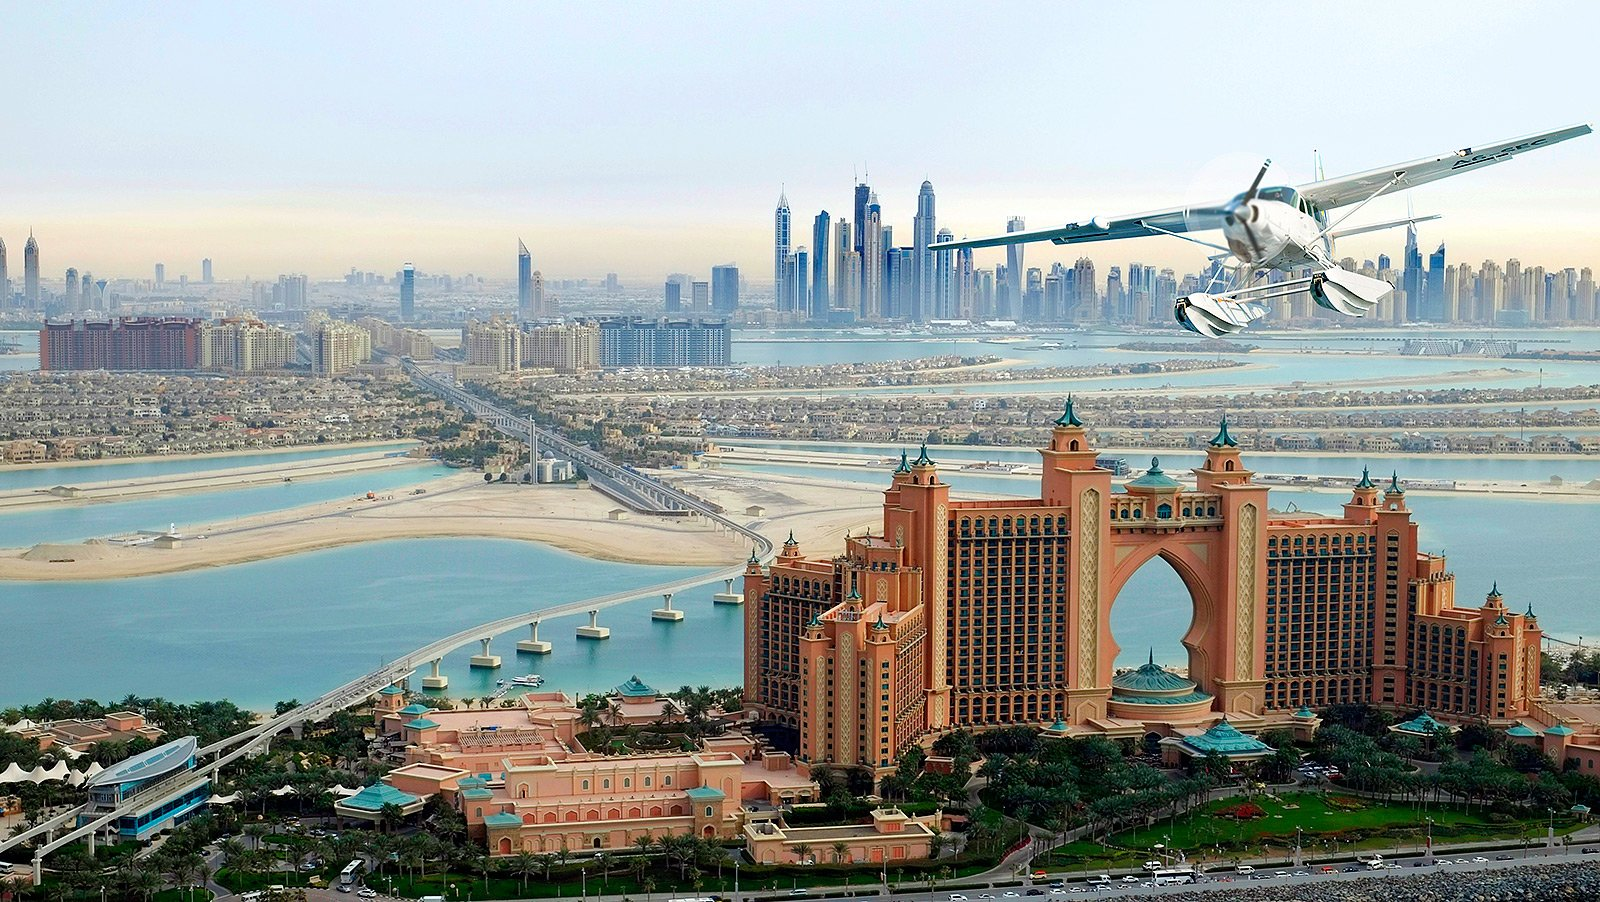 How to fly on a Seaplane in Dubai